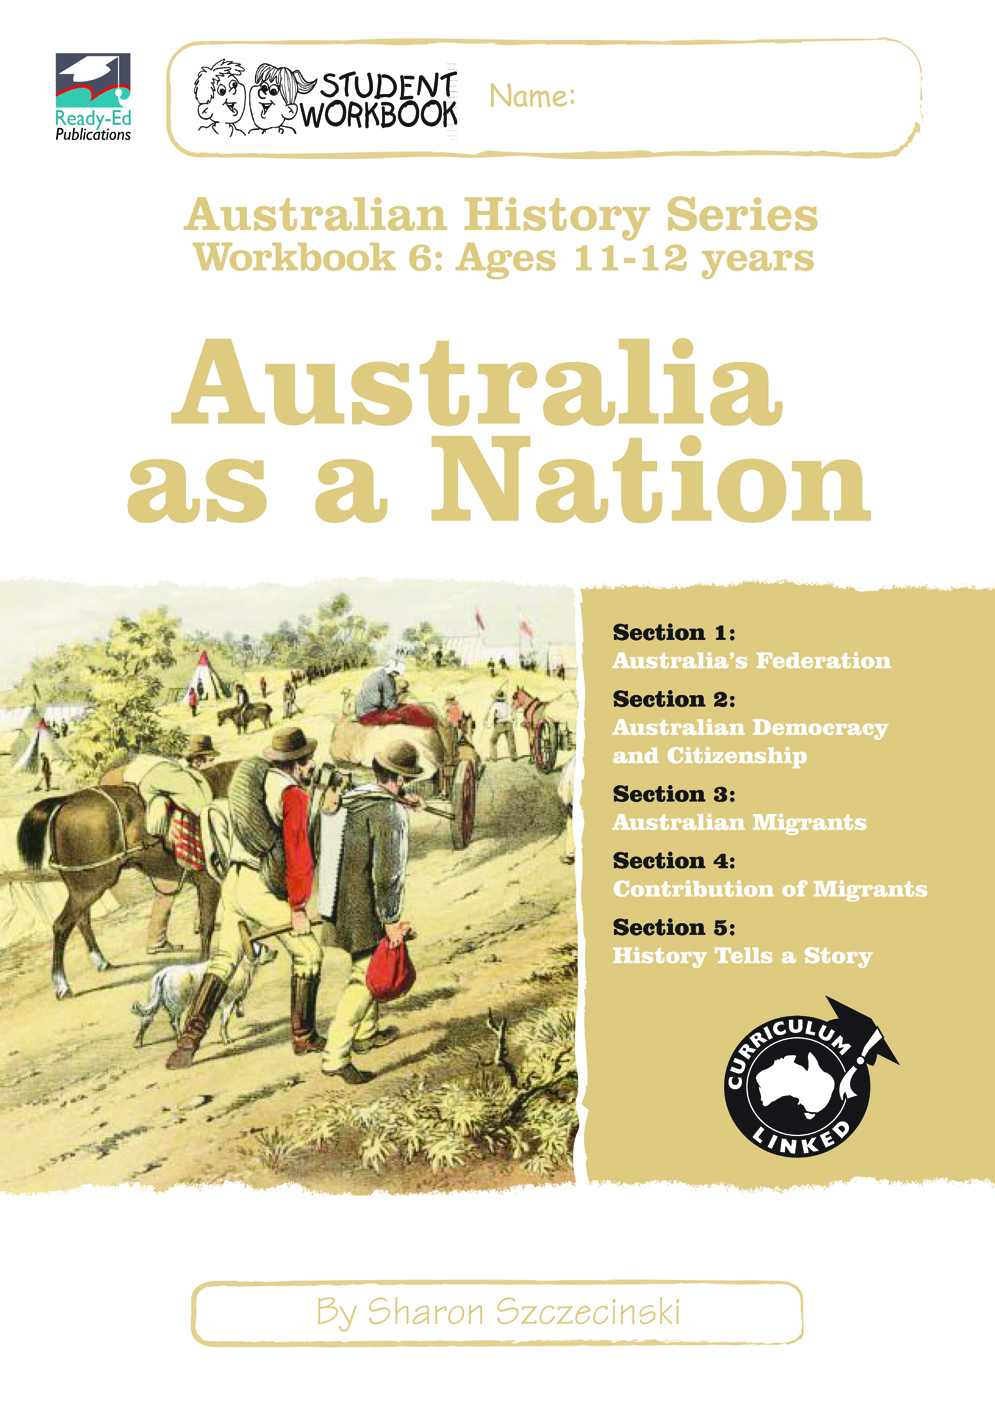 Australian History Series Workbooks – Citizenship in the Nation Worksheet Answers